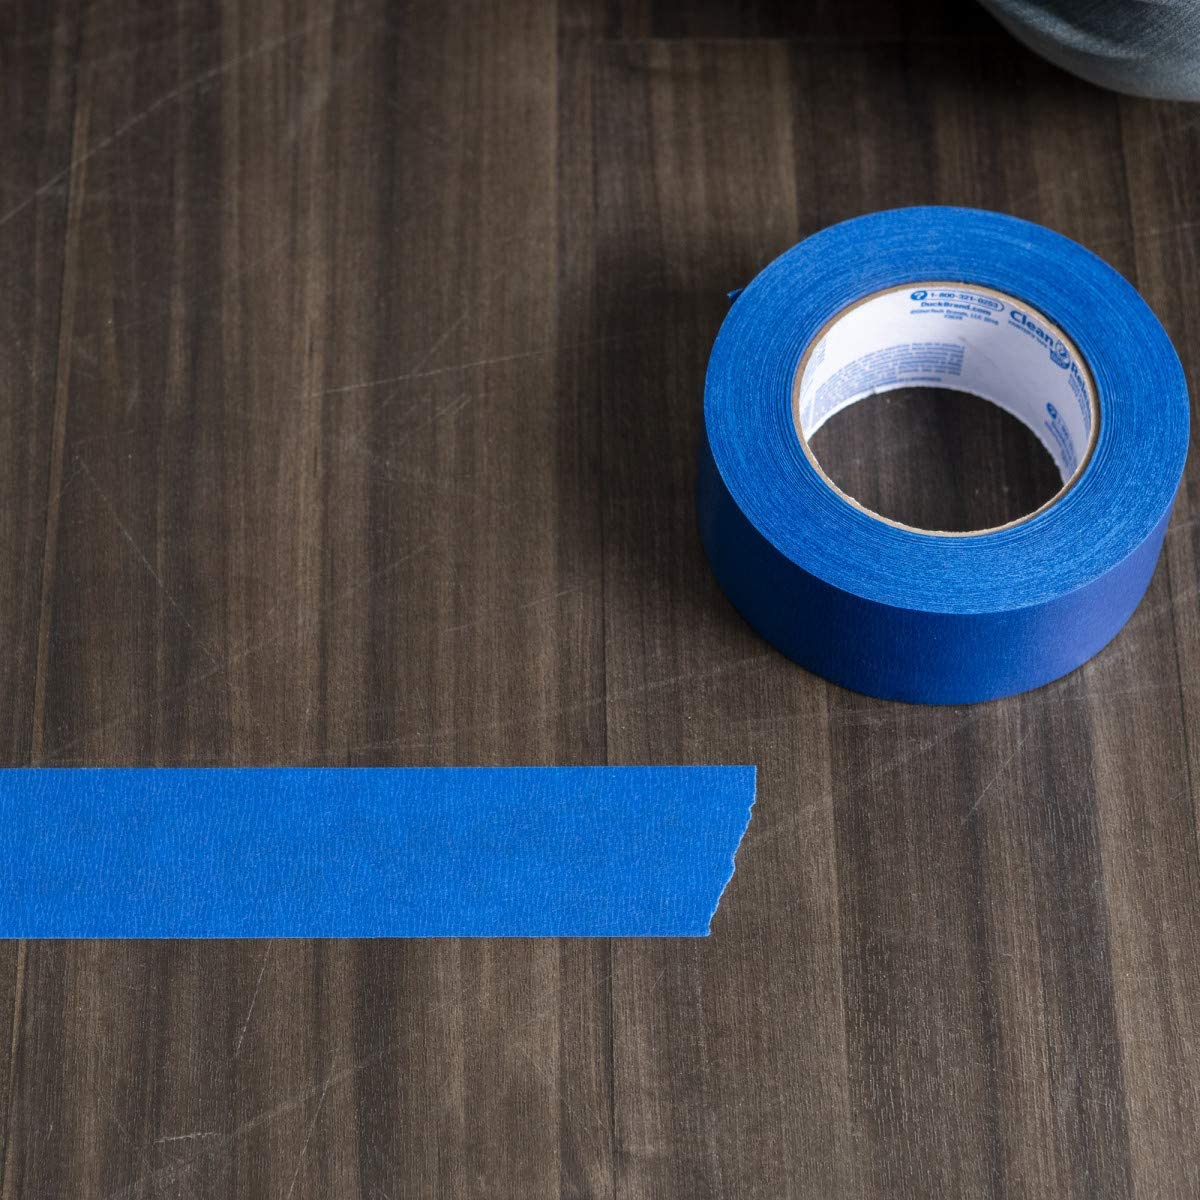 Duck Clean Release Blue Painter's Tape, 2-Inch (1.88-Inch x 60-Yard), Single Roll, 240195 - Cloth Tape -